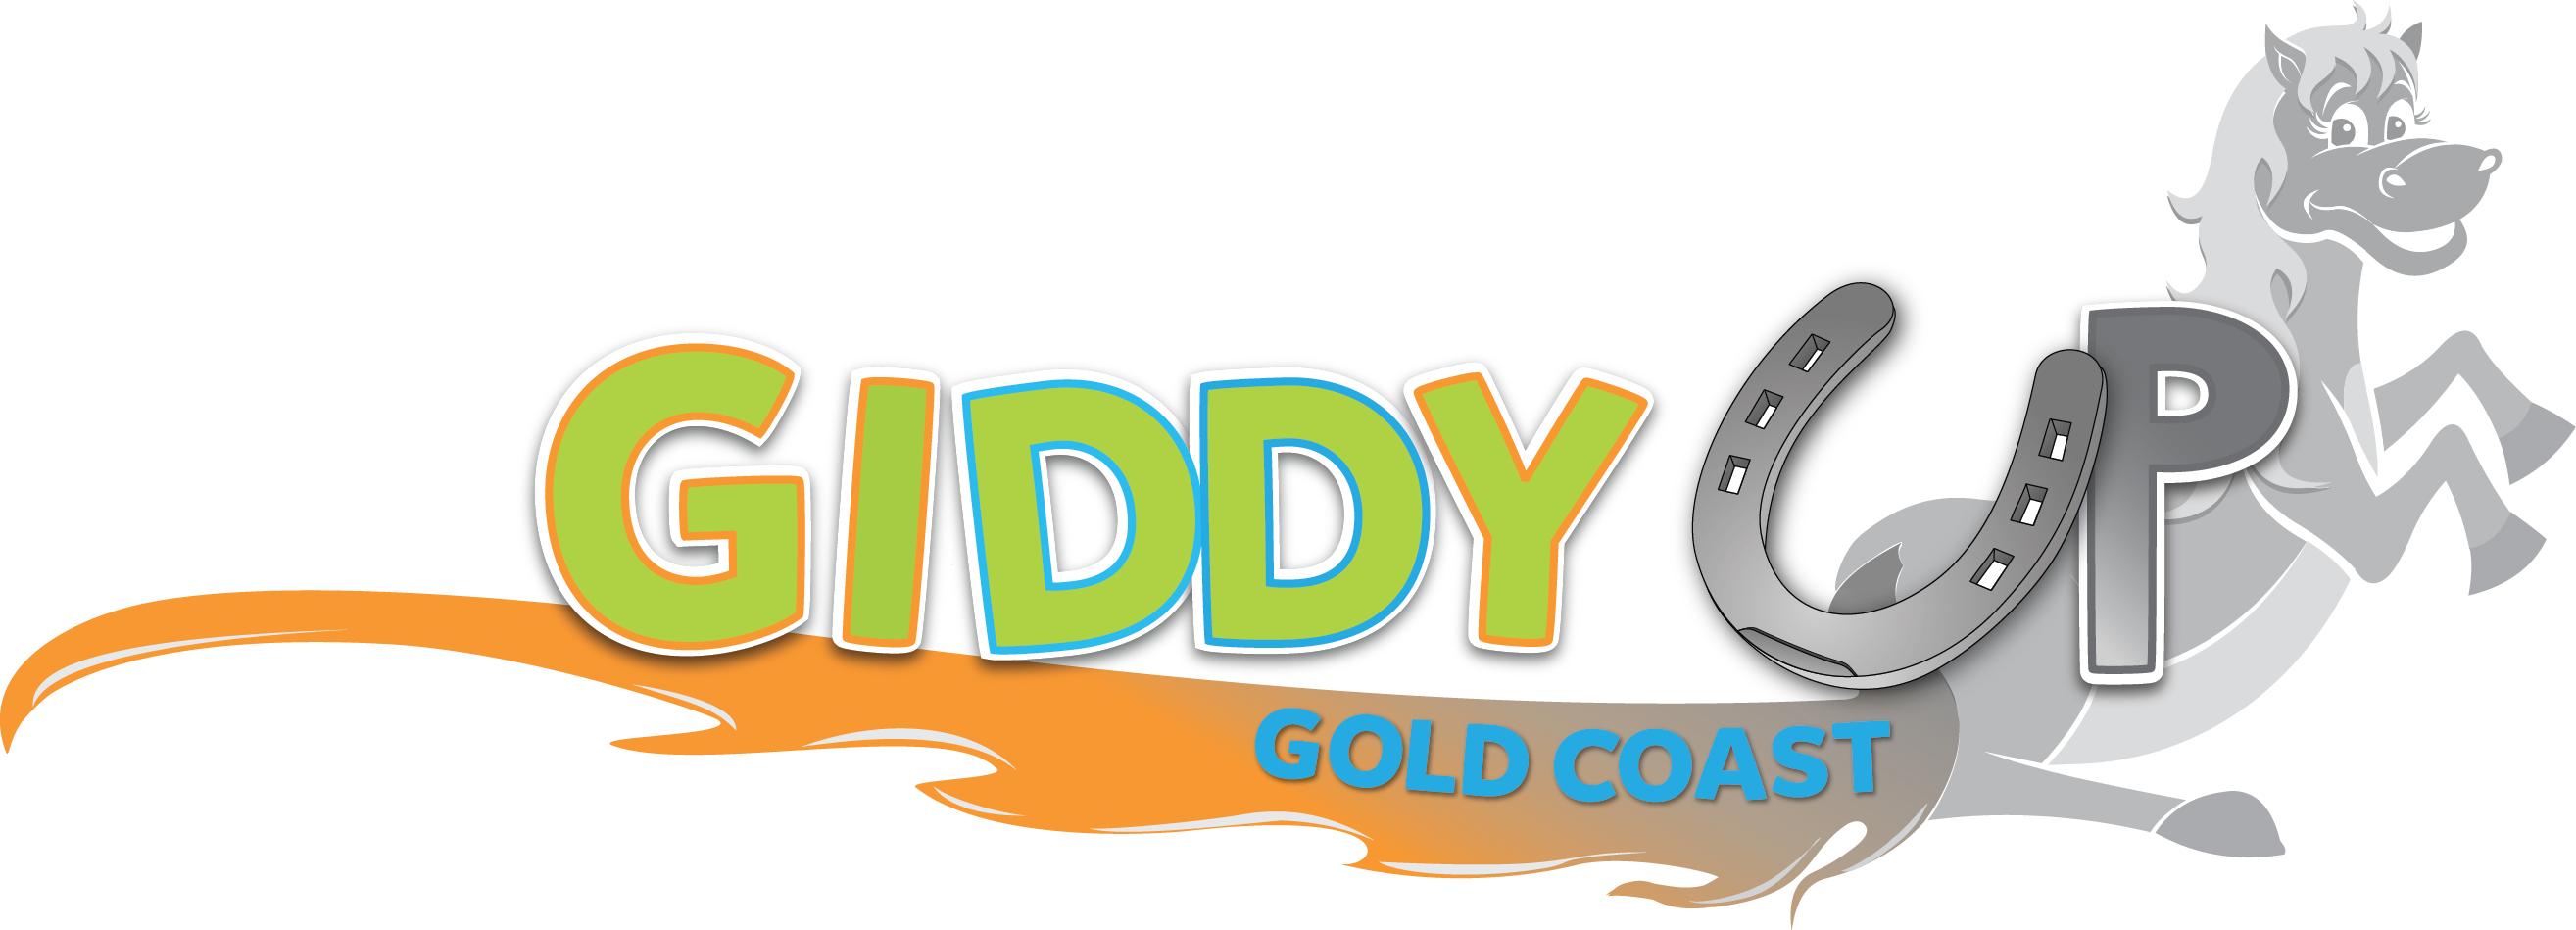 Giddy Up Gold Coast Facilities and Resources Logo